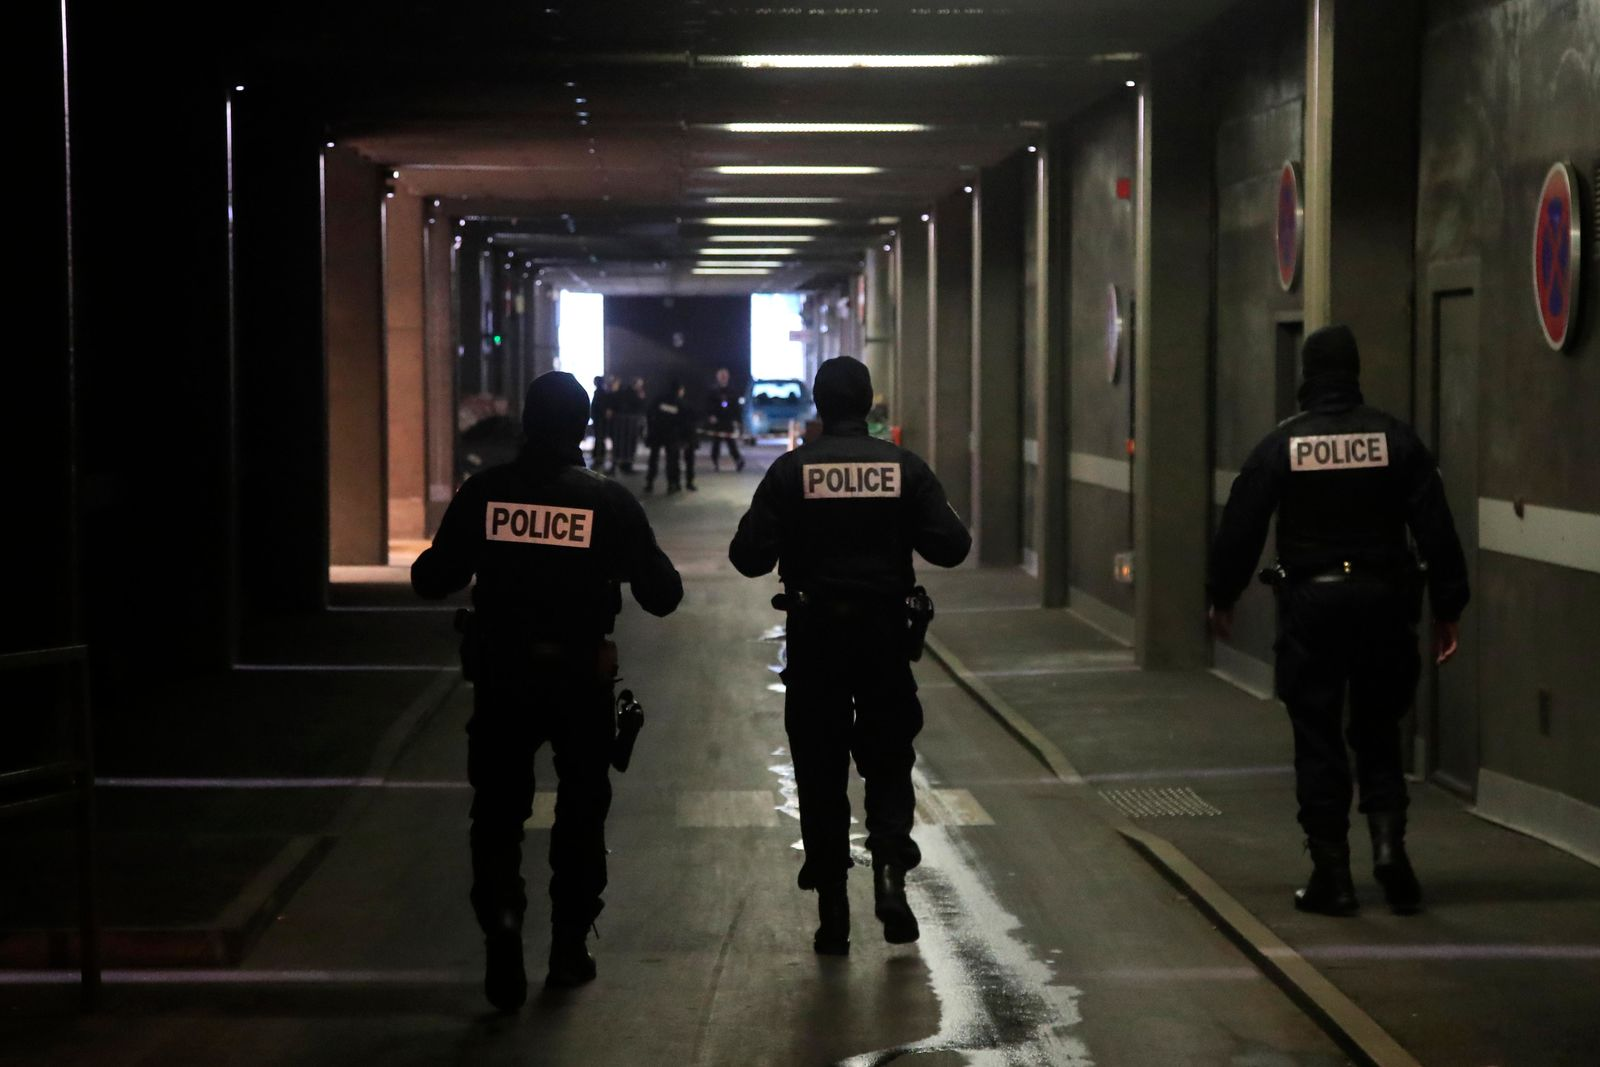 Police officers patrol in a tunnel under Le Defense business district after a man who threatened officers Friday, Dec.13, 2019 in Paris. (AP Photo/Michel Euler)